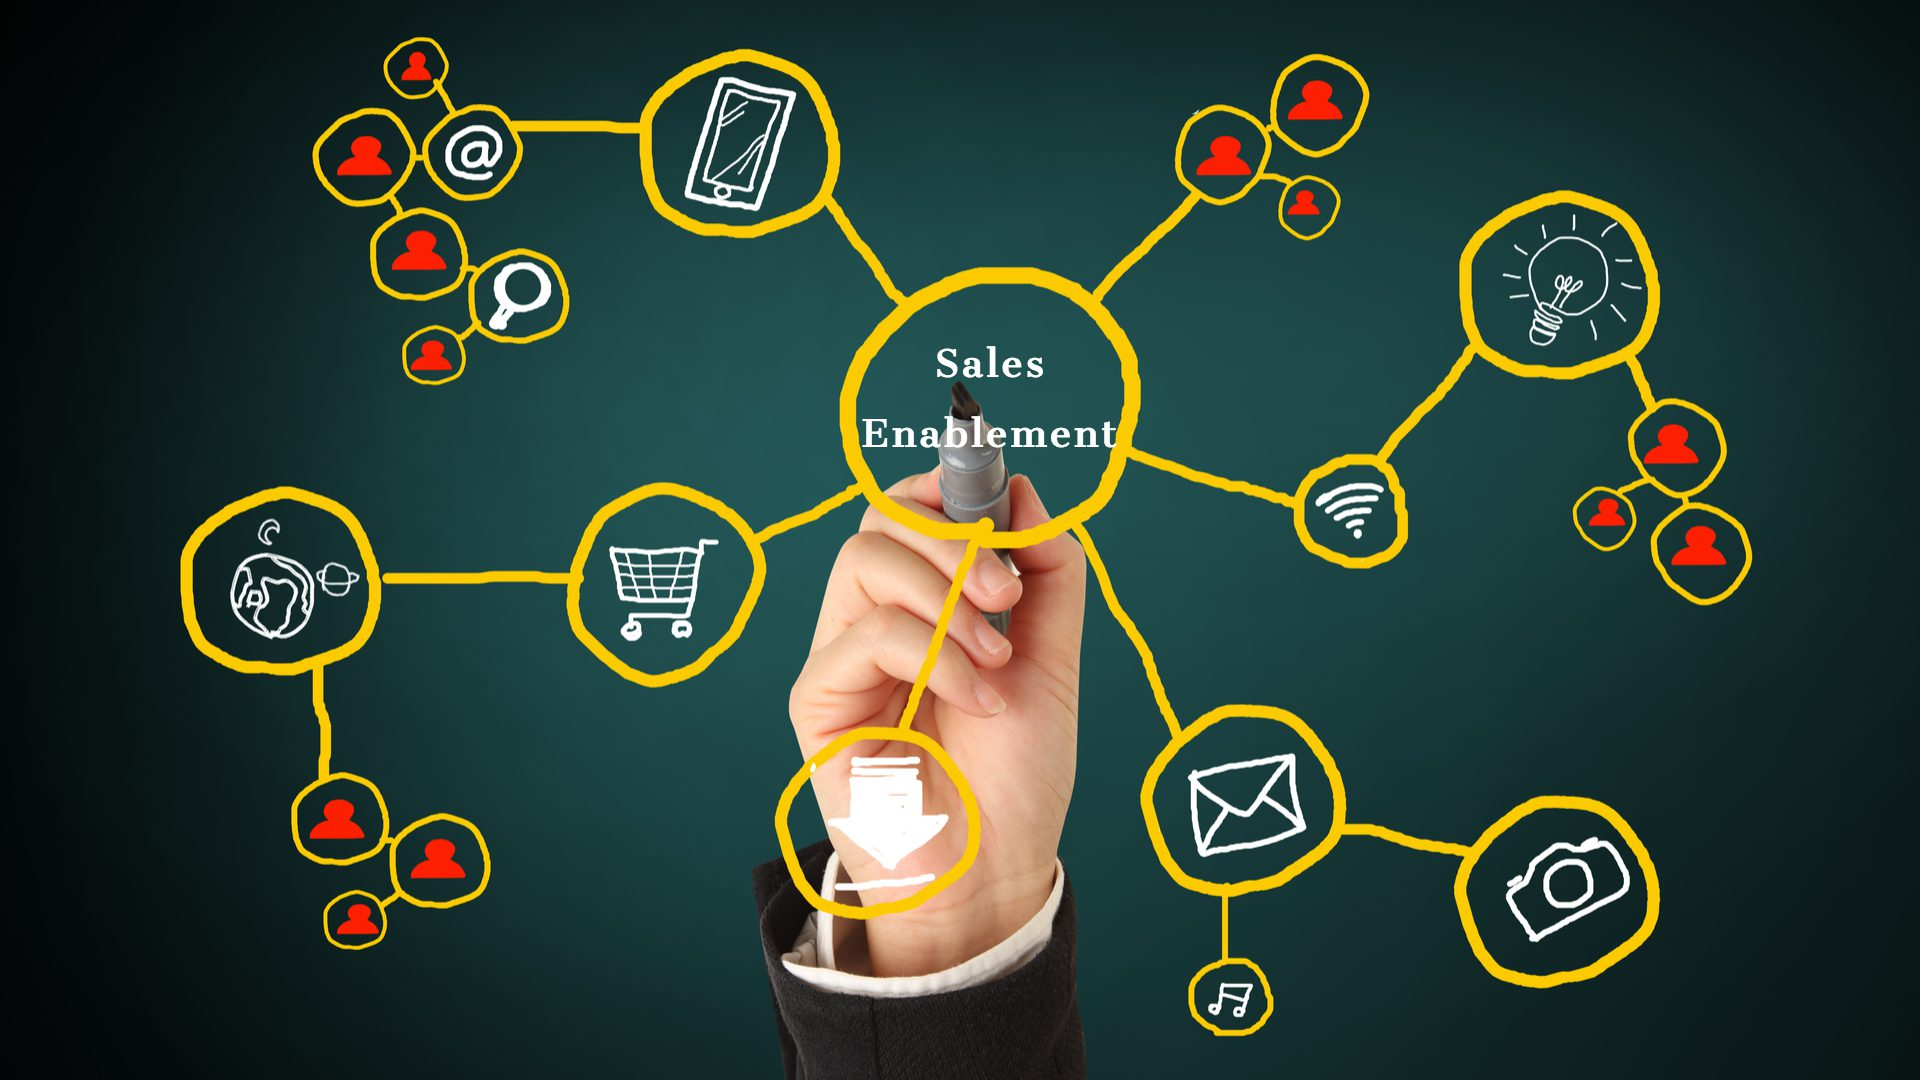 Top 20 Sales Enablement in 2020 Tools To Empower Your Sales Team [Updated]